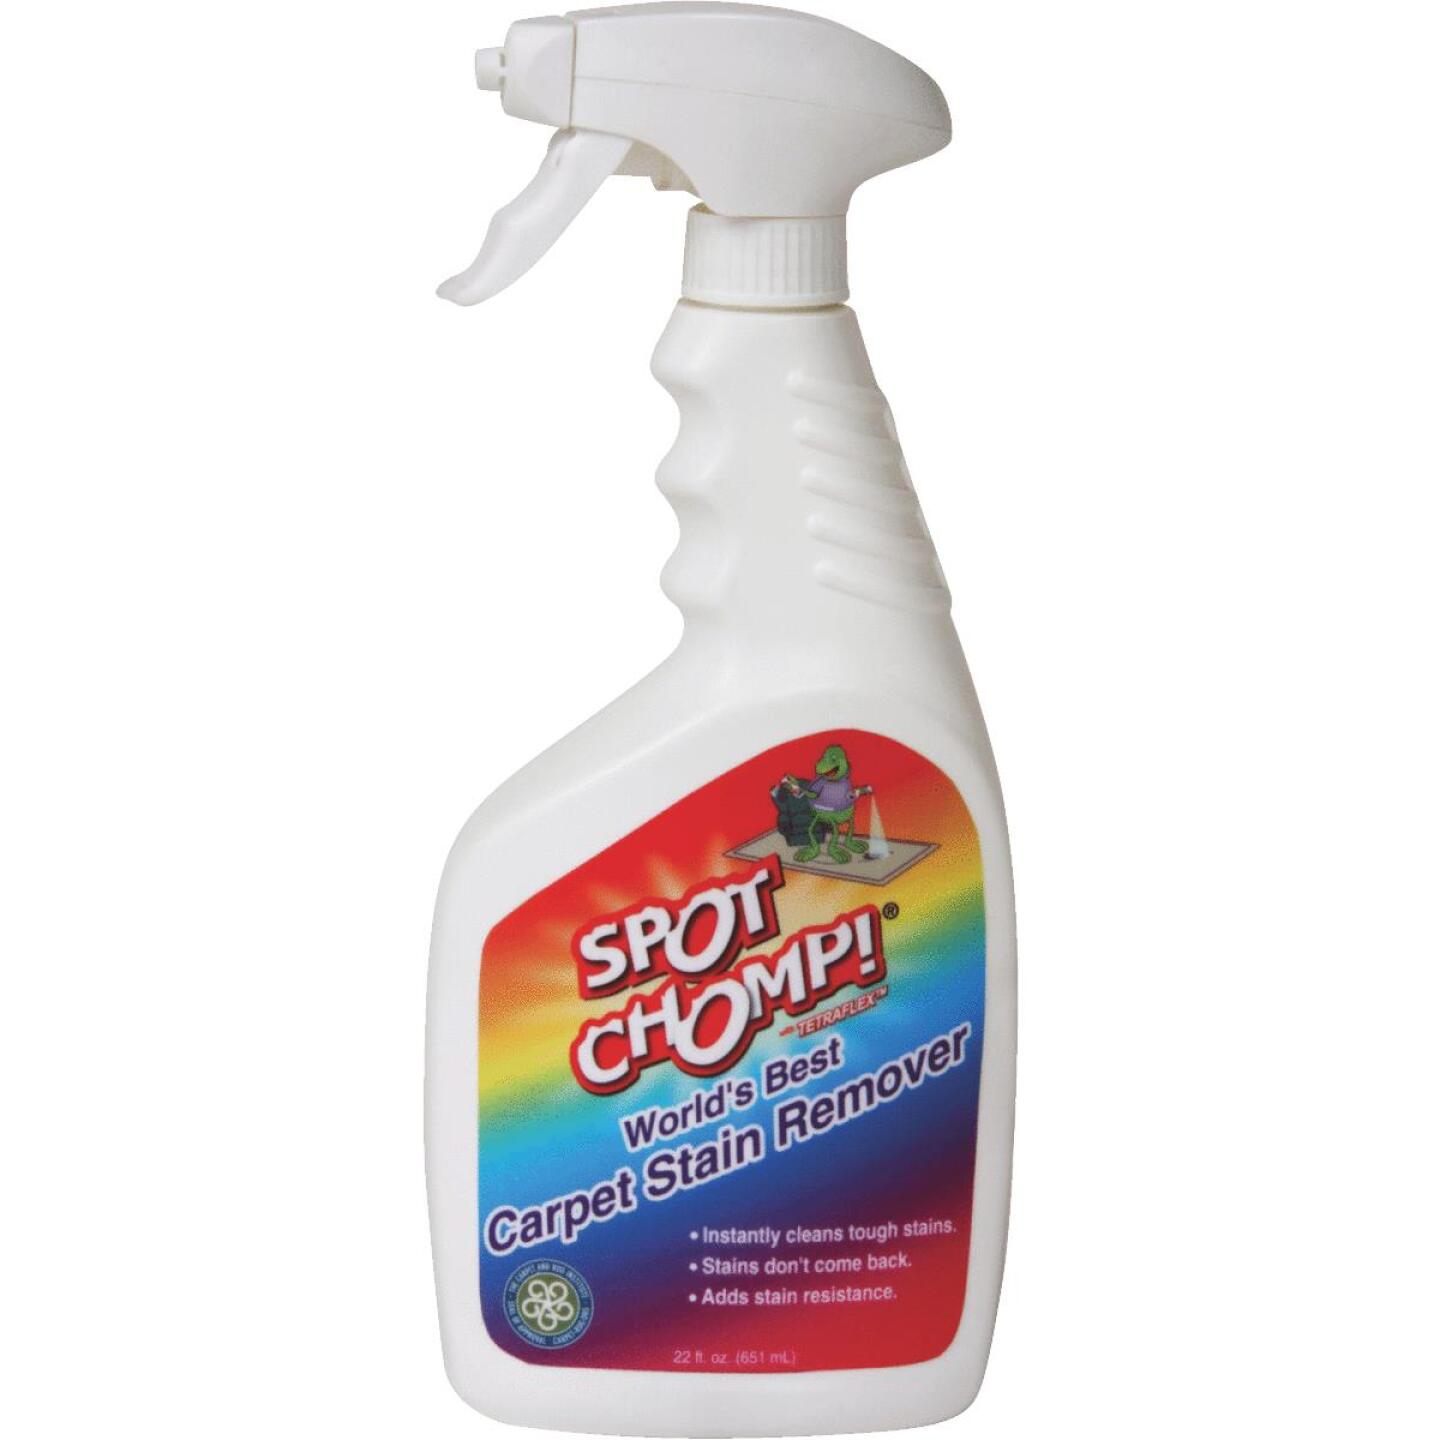 SPOT CHOMP STAIN REMOVER Image 1